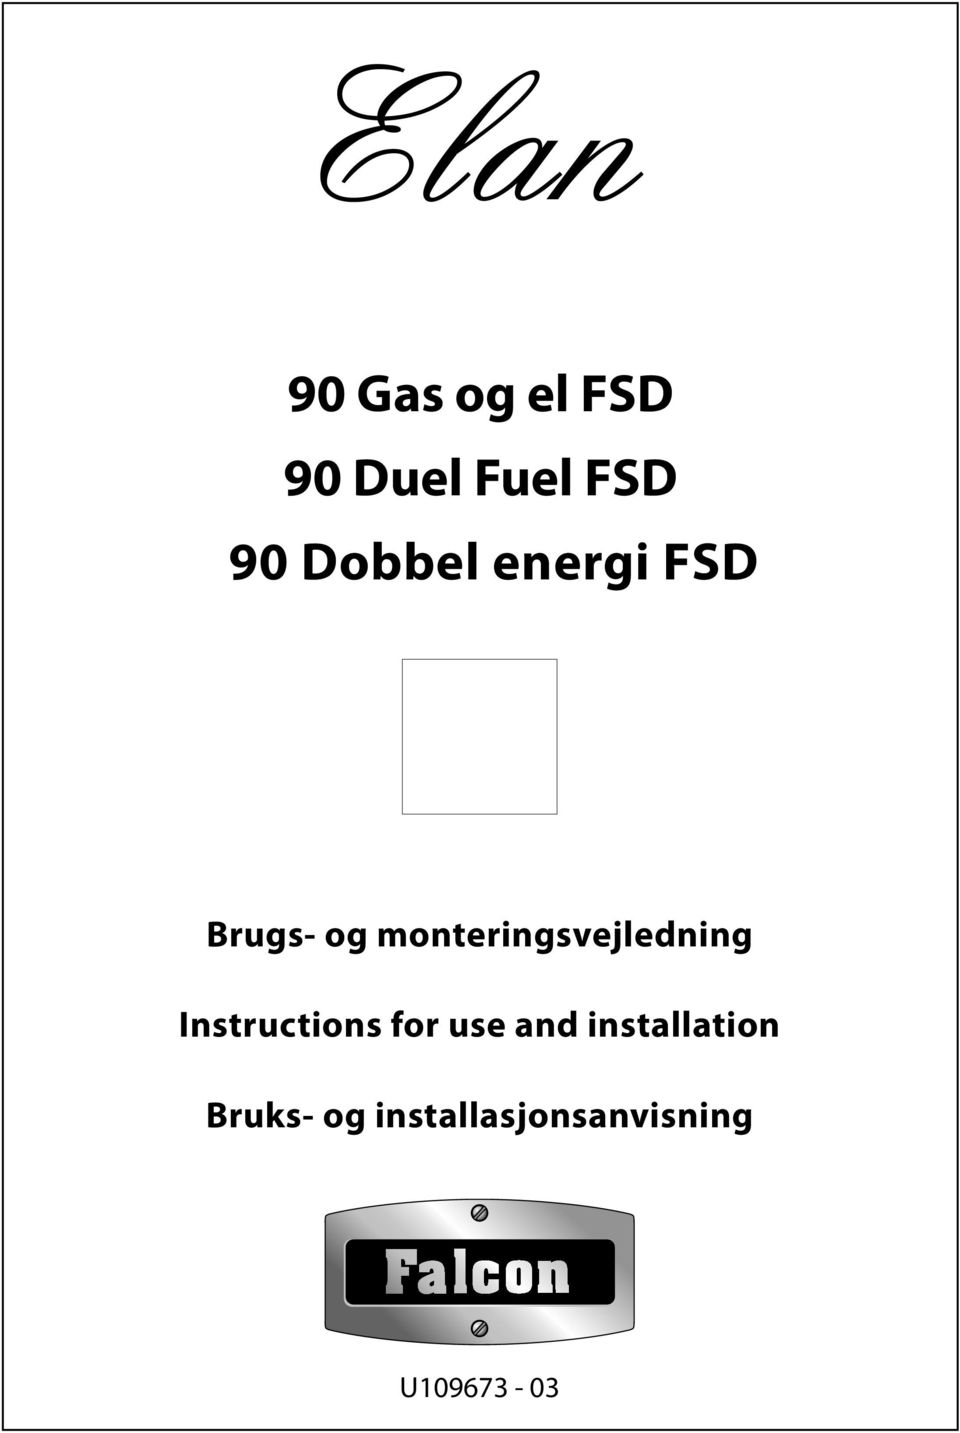 for use and installation Bruks- og